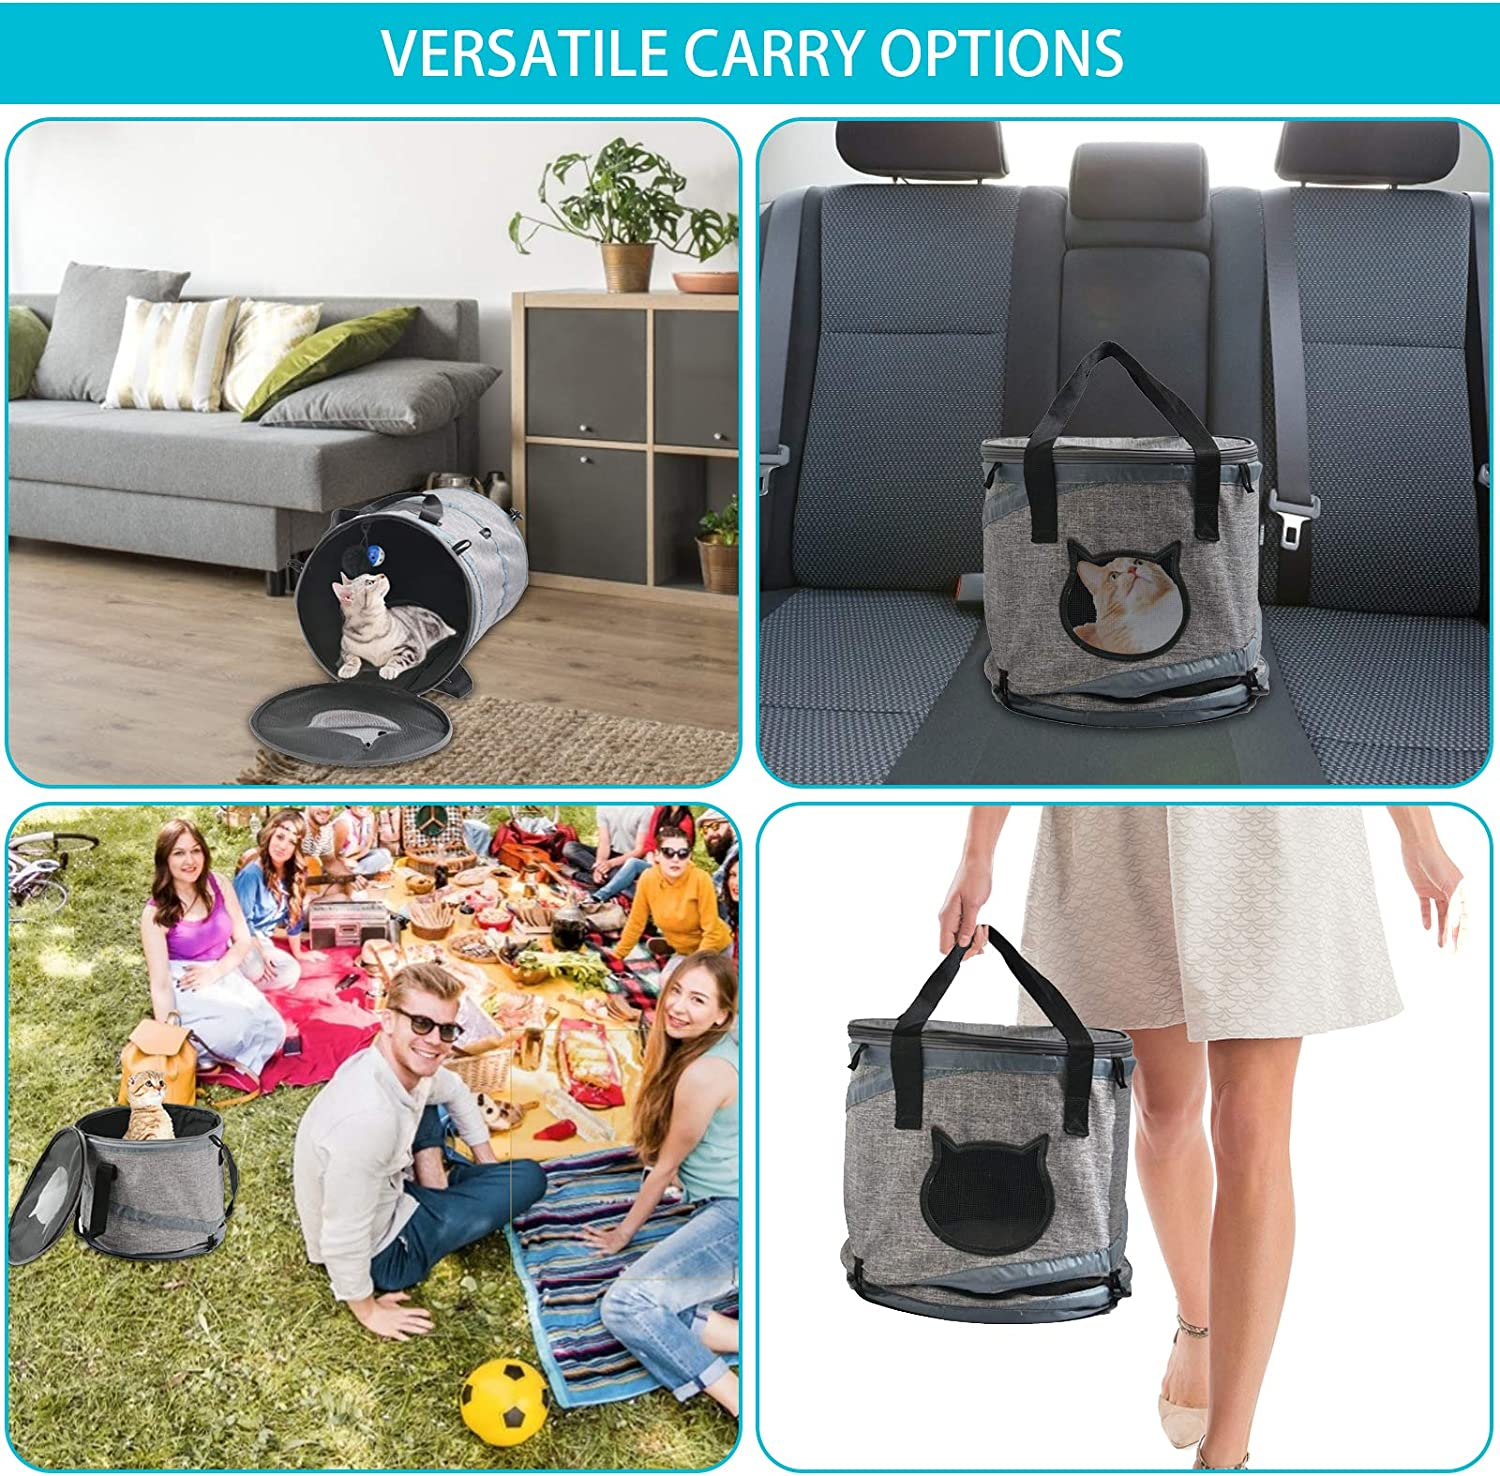 Multifunctional Kitten Bag for Indoor Cats Miamaomi 3 in 1 Cat Bag Carrier Backpack Travel Carrier for Cat and Puppy Easy Carry on Luggage with Fleece Mat Cat Tunnel Bed Pet Bag